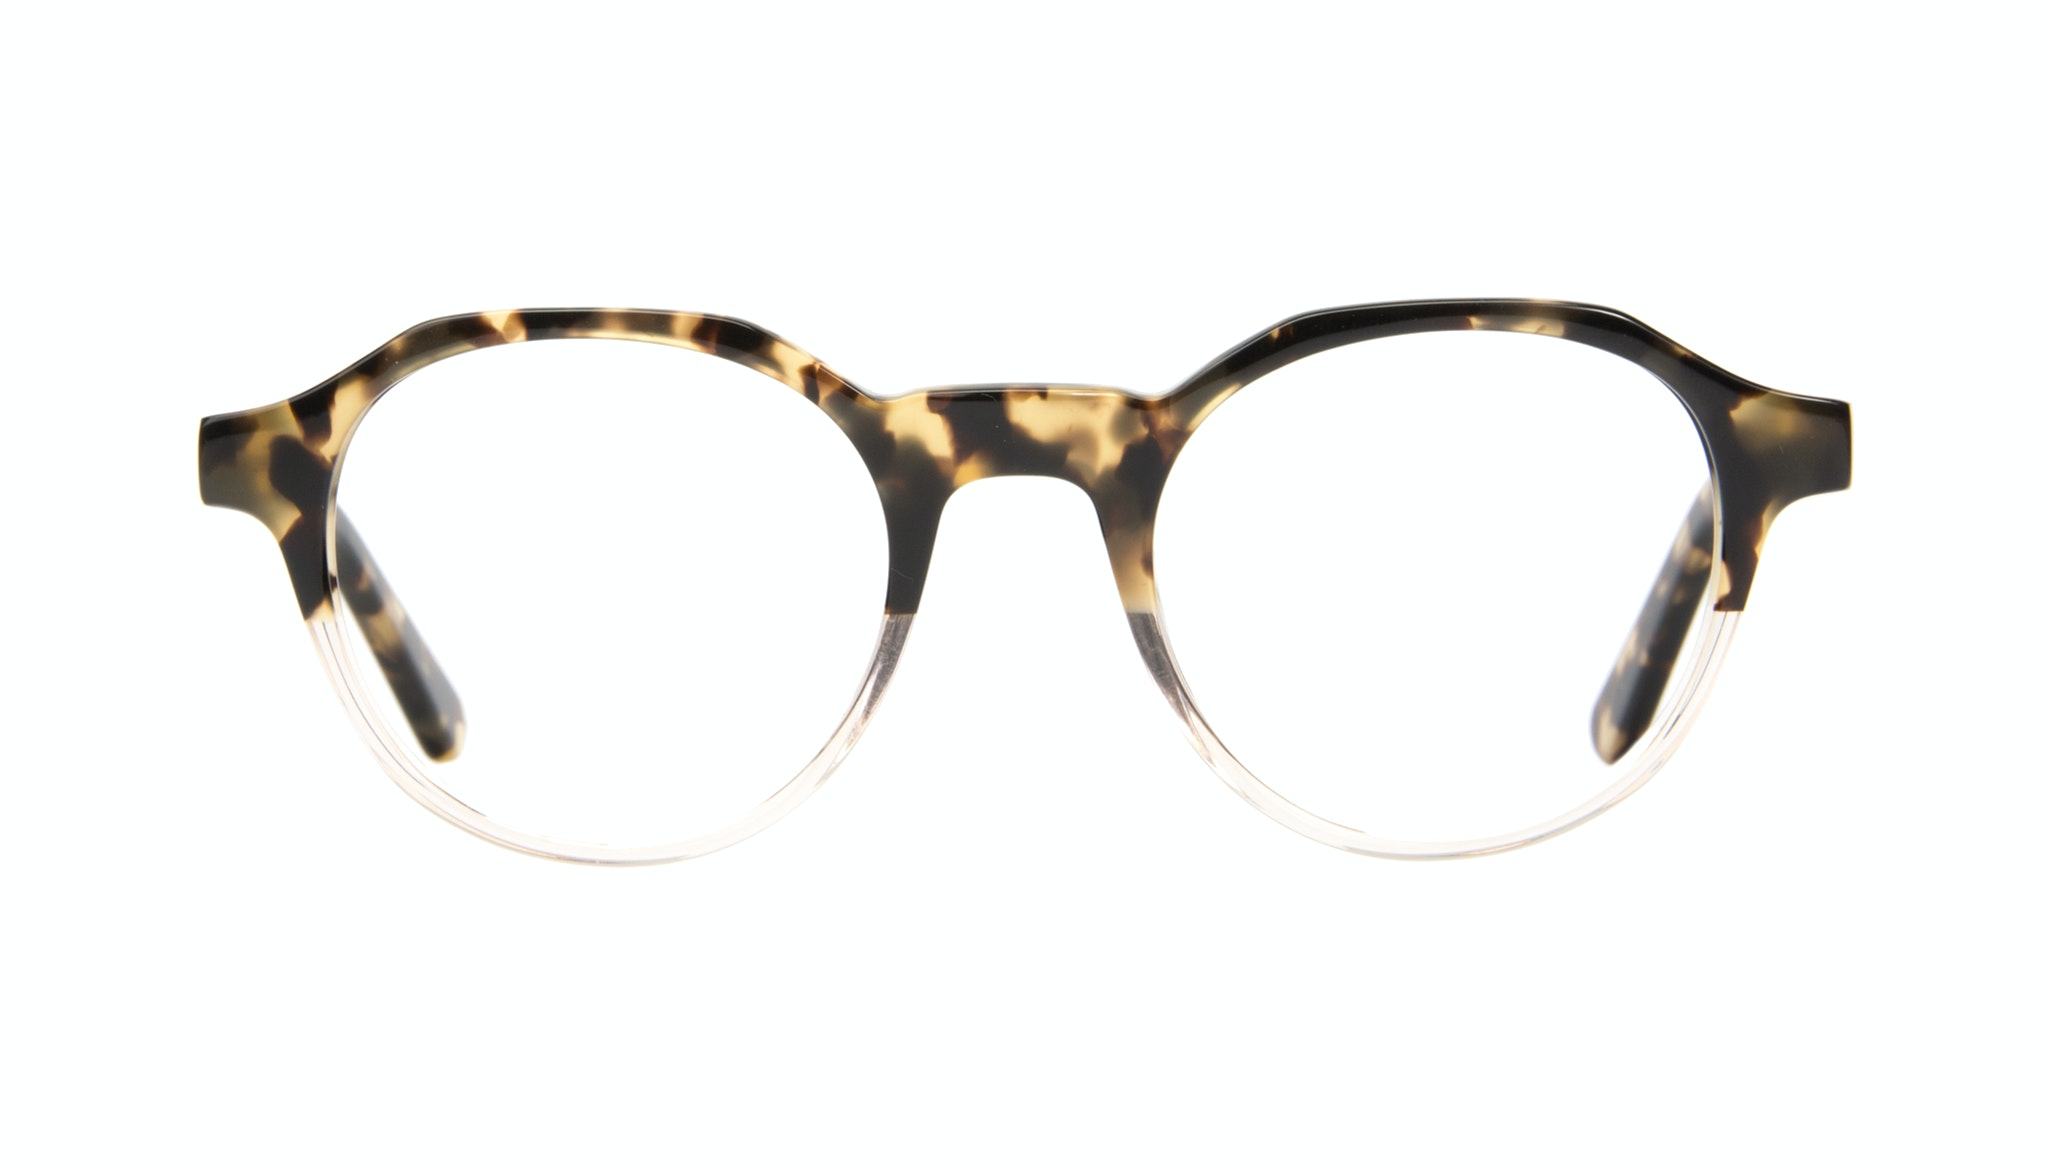 Affordable Fashion Glasses Round Eyeglasses Men Form Golden Tort